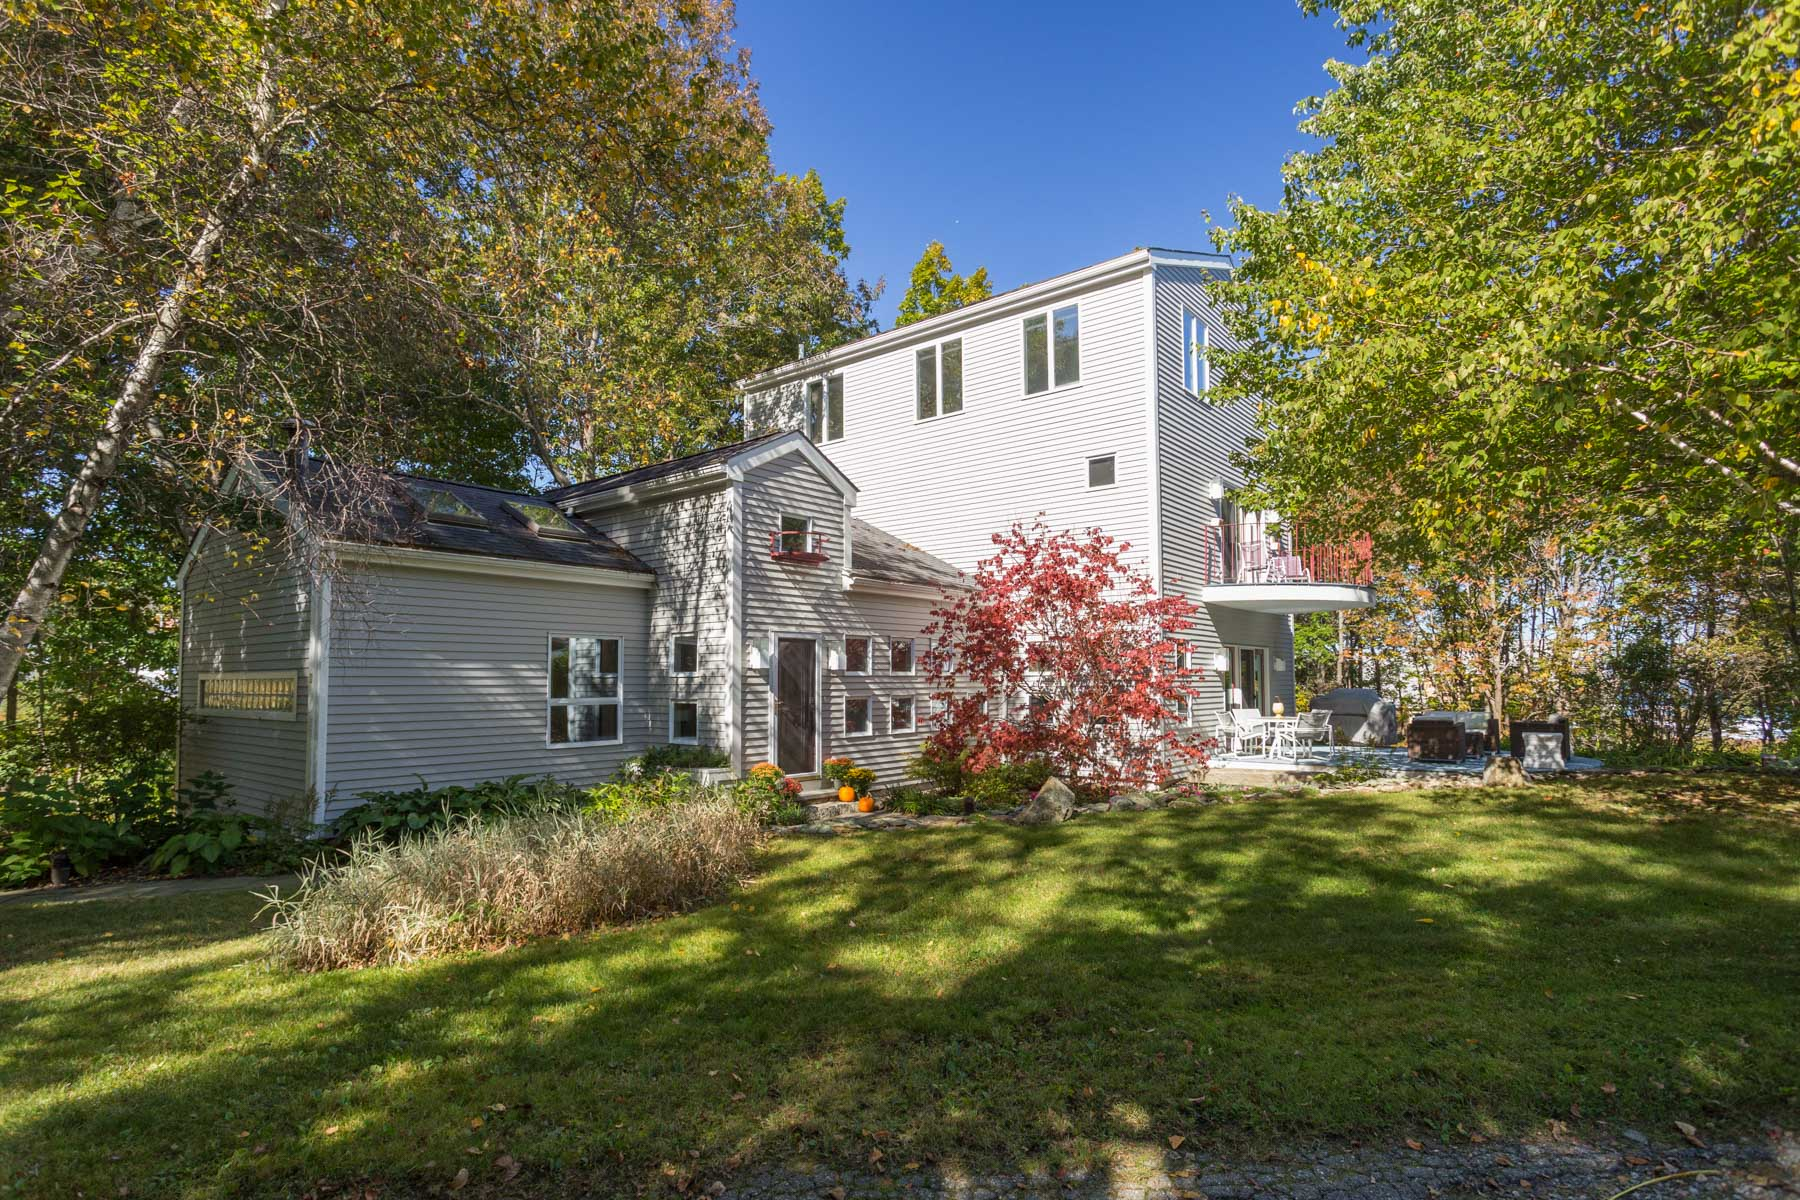 Single Family Home for Sale at 11 Sandy Point Road Ogunquit, Maine 03907 United States